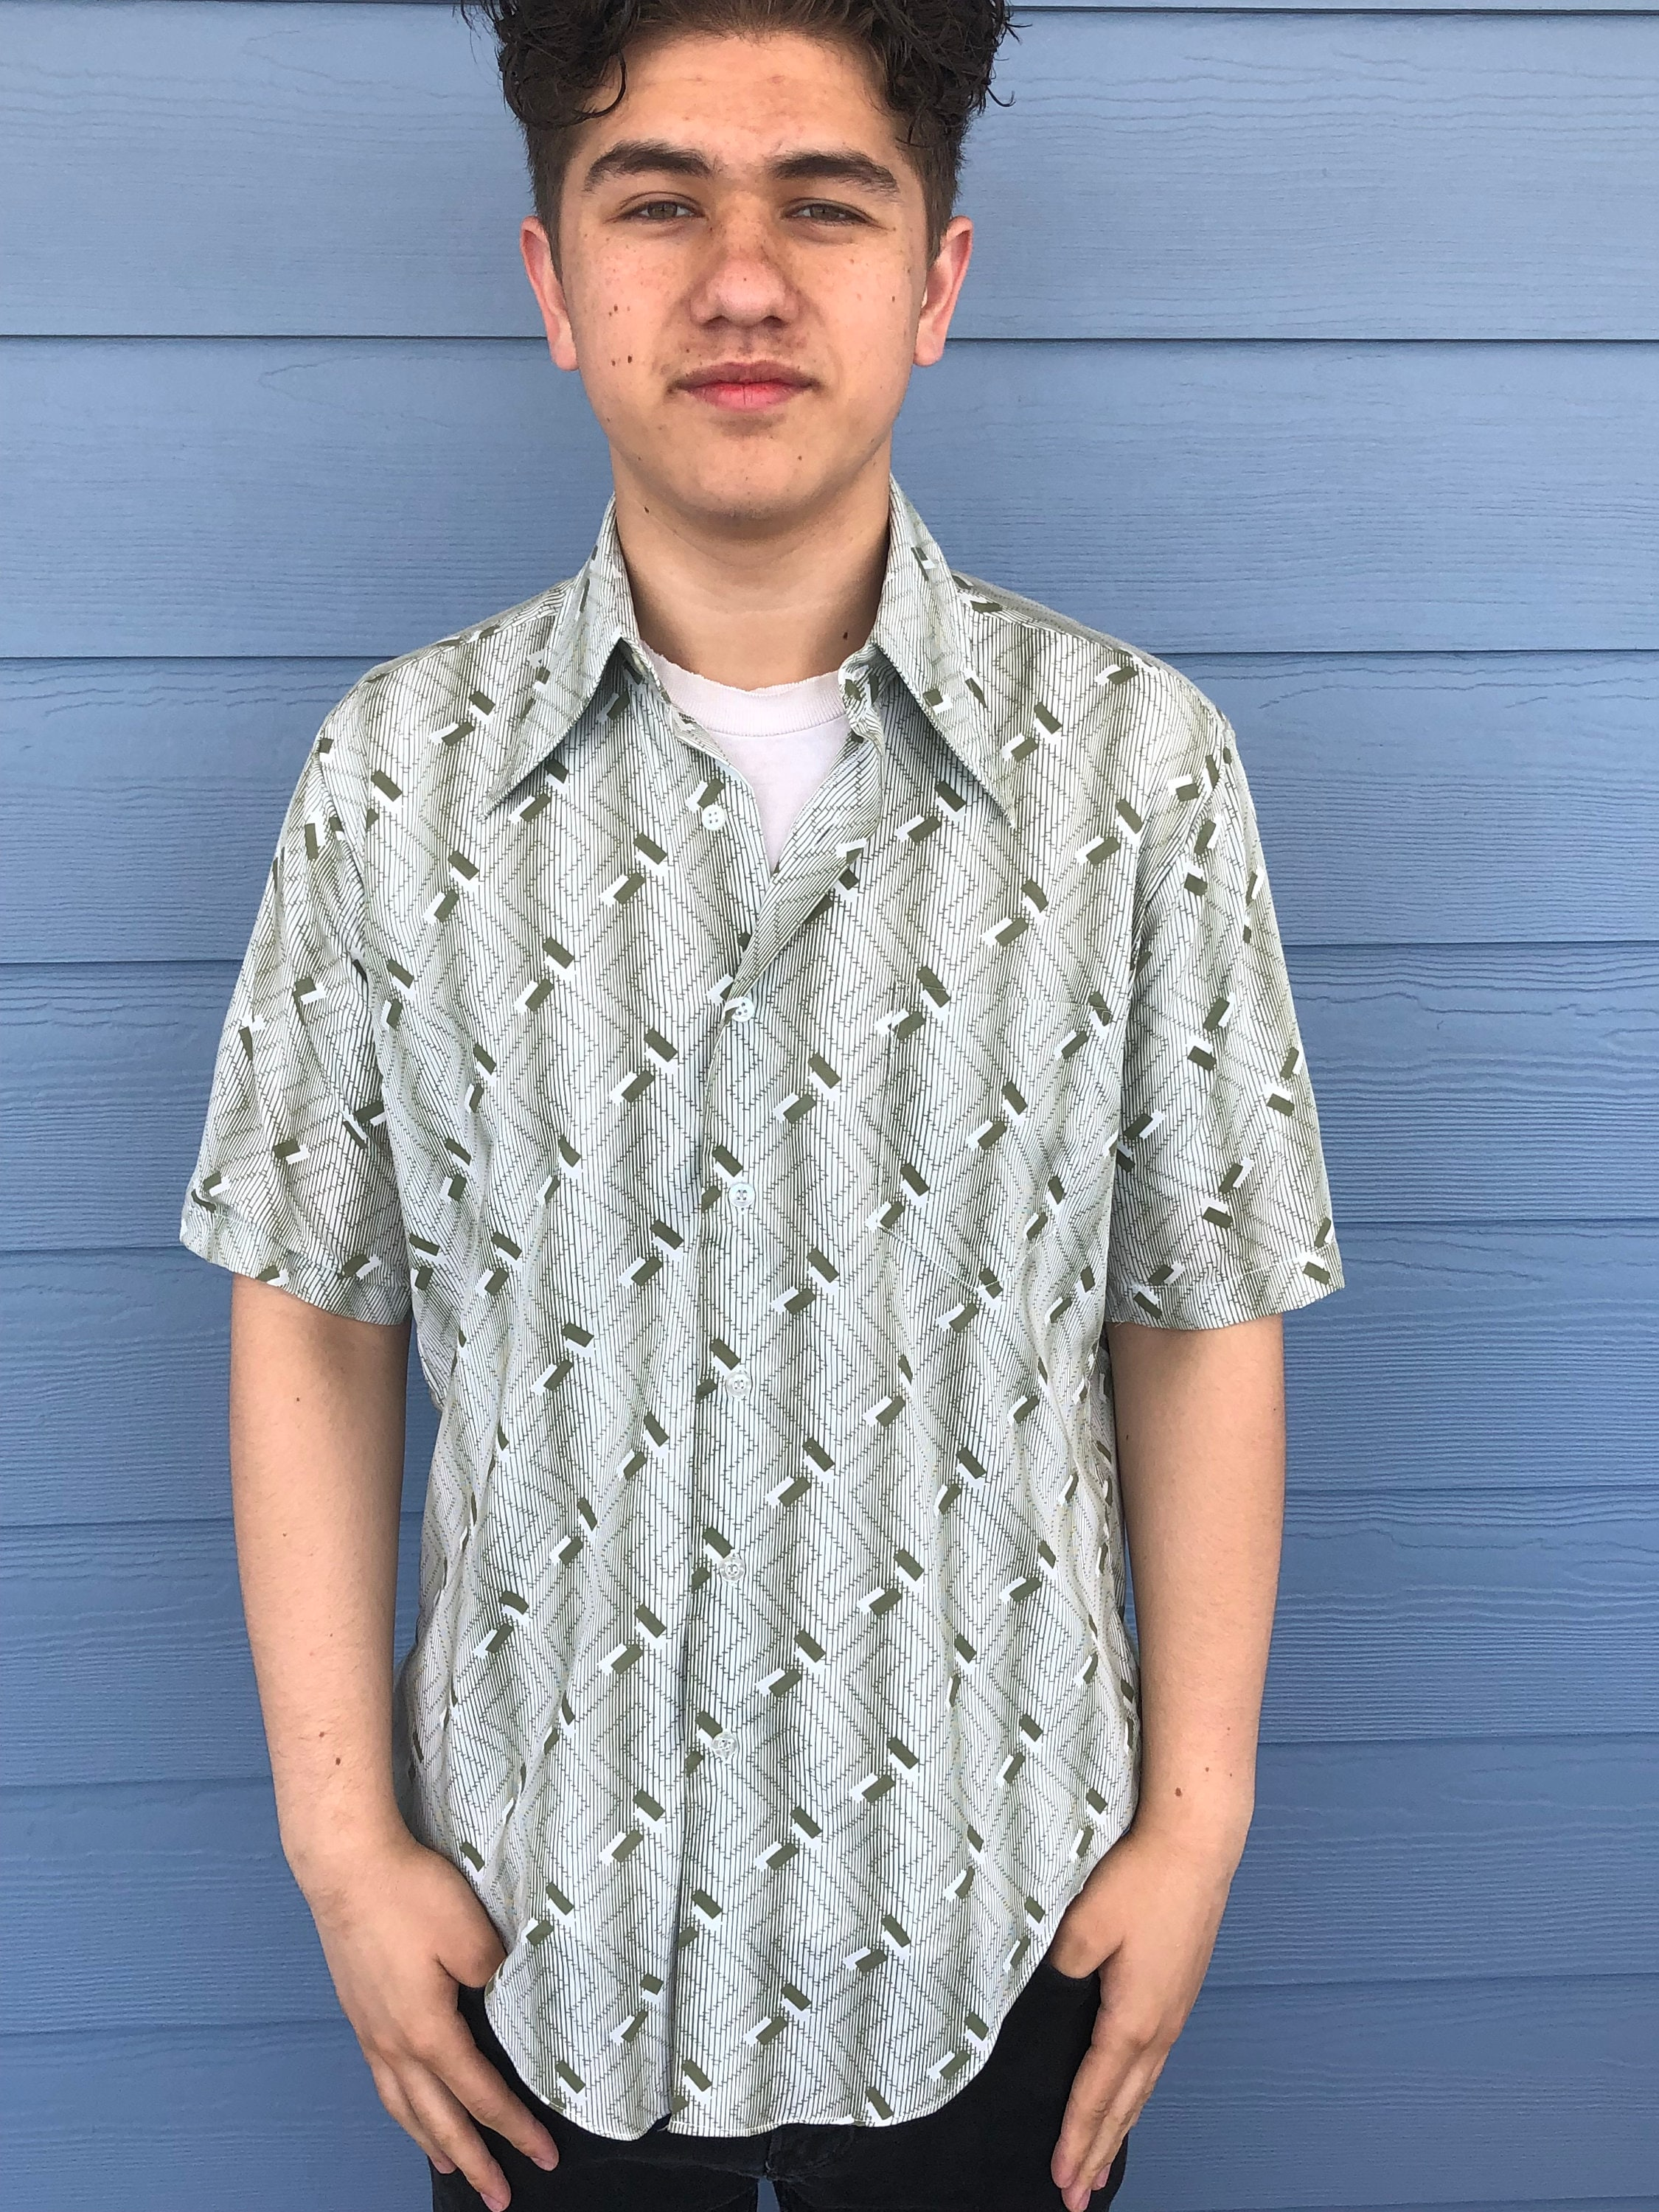 1970s Men's Shirt Styles – Vintage 70s Shirts for Guys Vintage 1970s K Mart Cotton Poly Mens Green Print Short Sleeve Button Front Shirt Size M Made in Korea - Vintage Mens Short Sleeve Shirt $20.00 AT vintagedancer.com